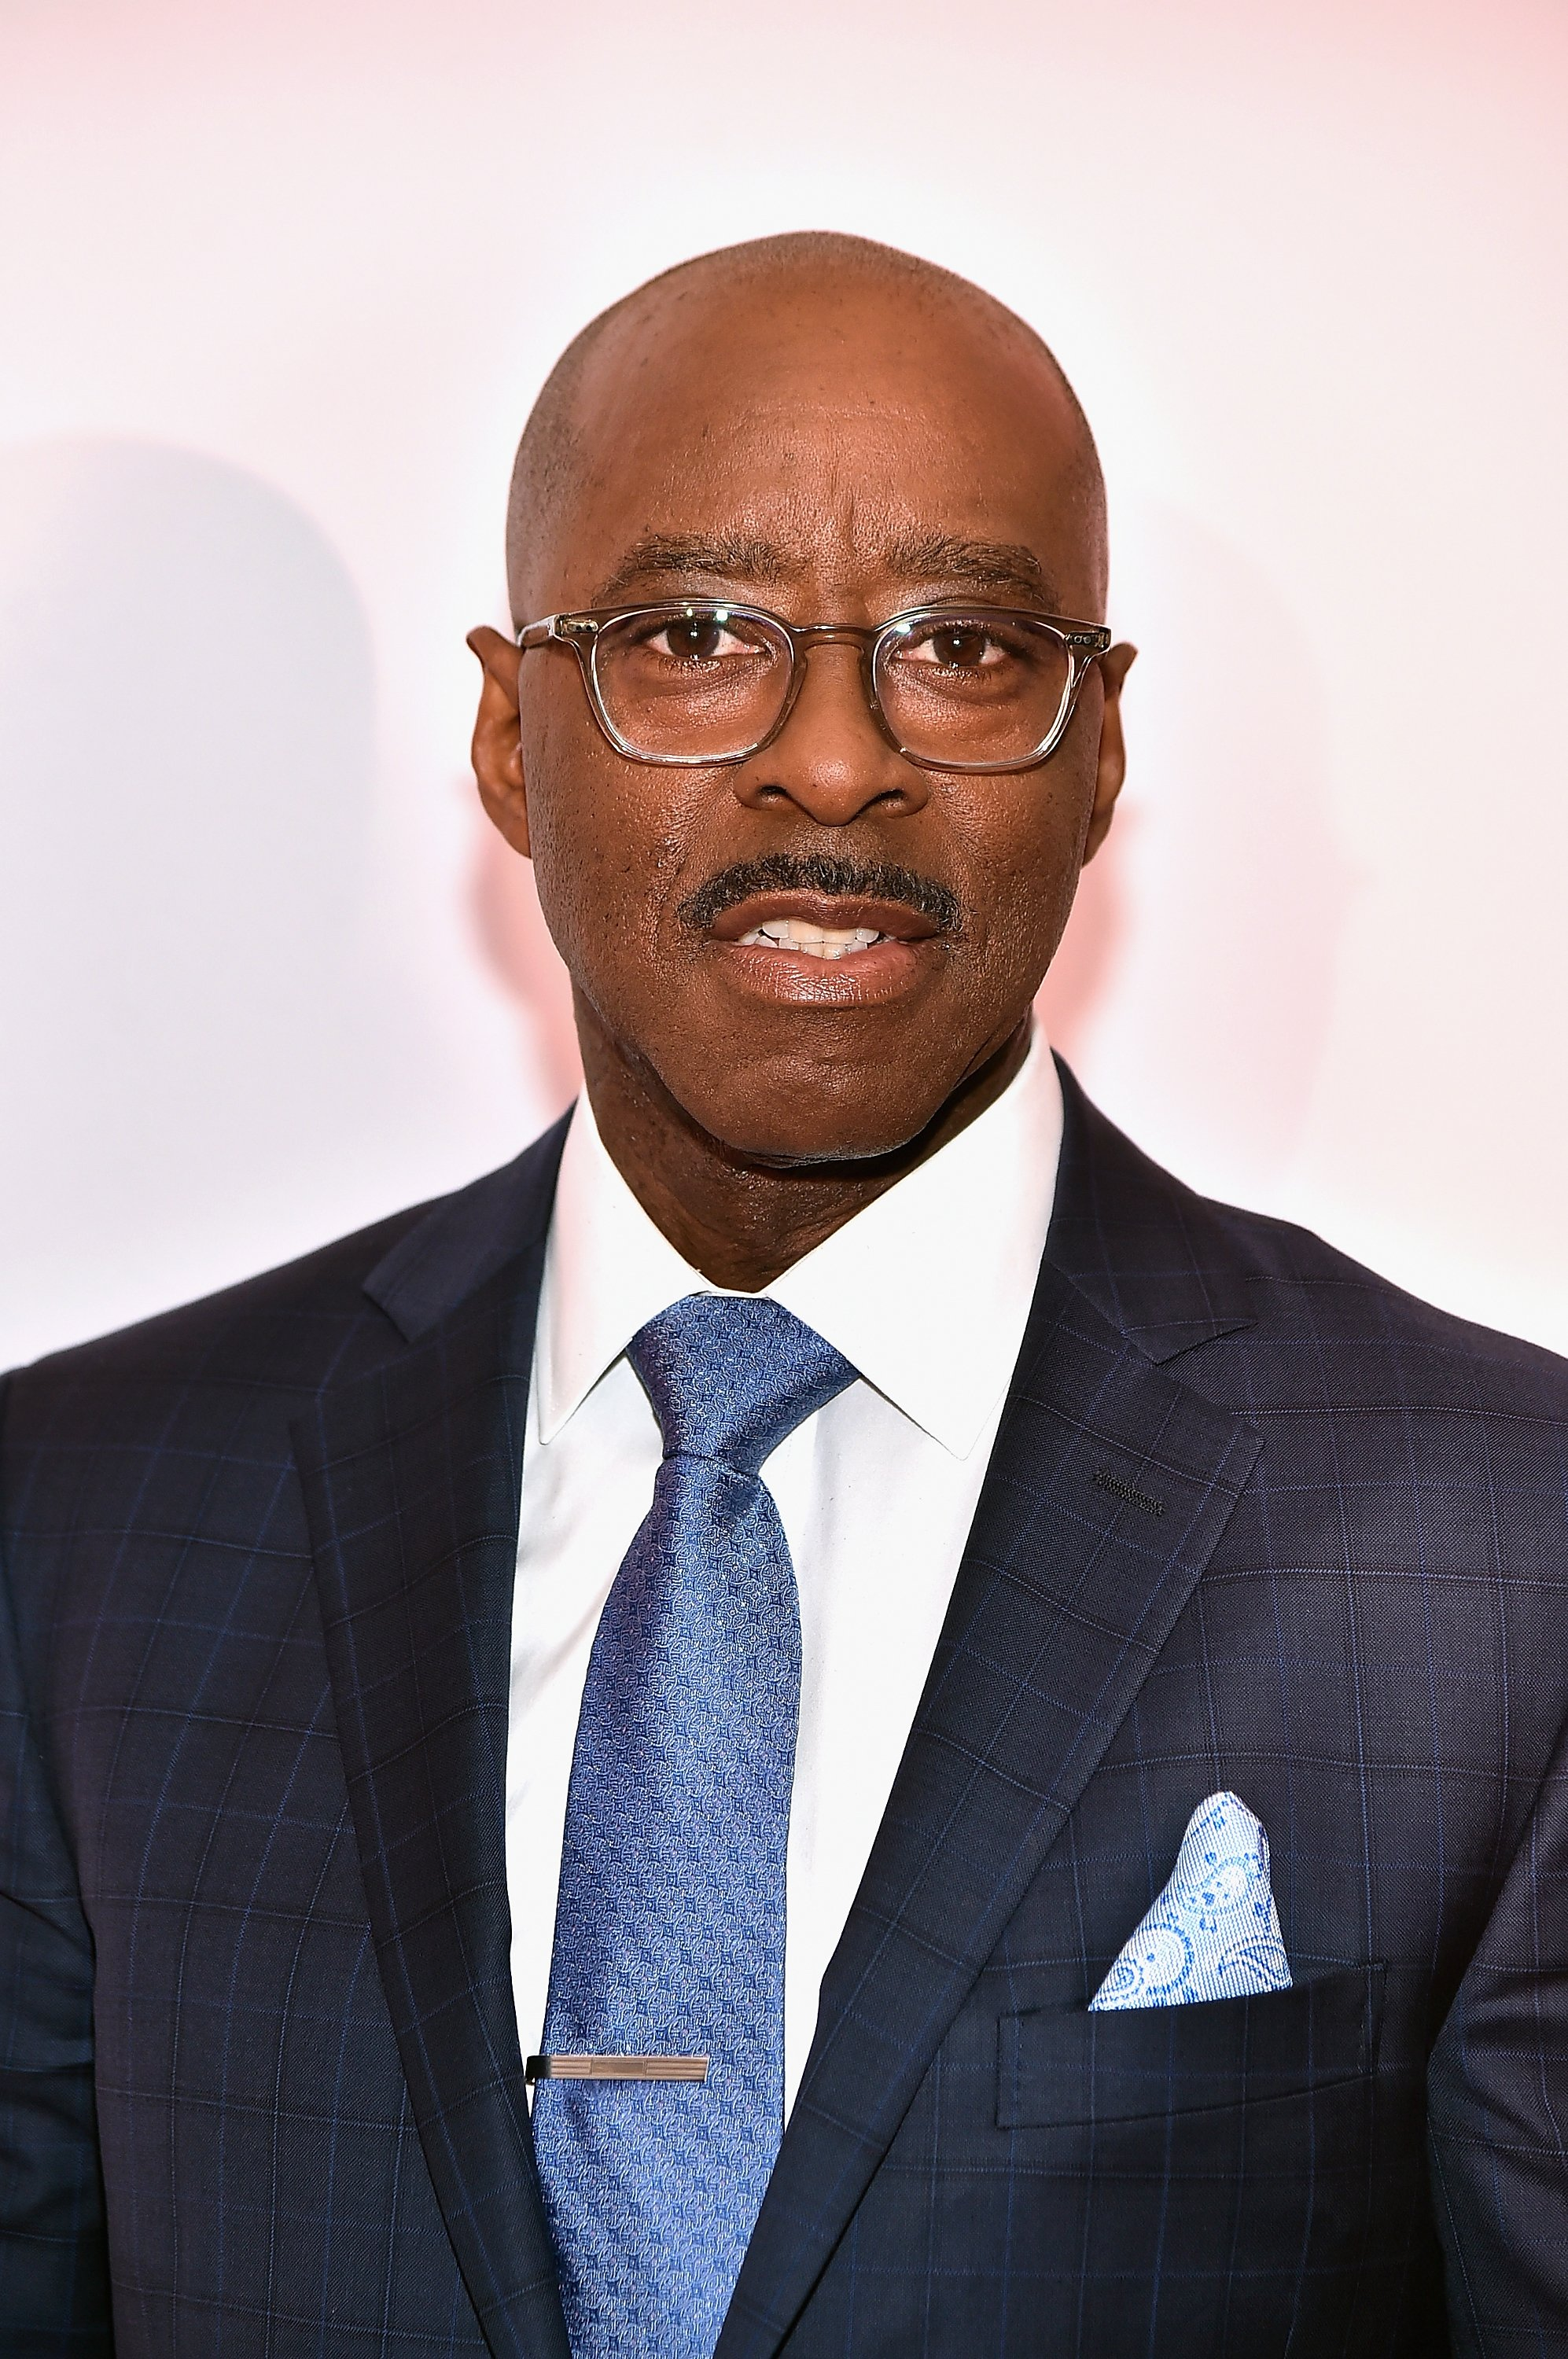 """Courtney B. Vance attends the """"Isle Of Dogs"""" New York screening on March 20, 2018, in New York City. 